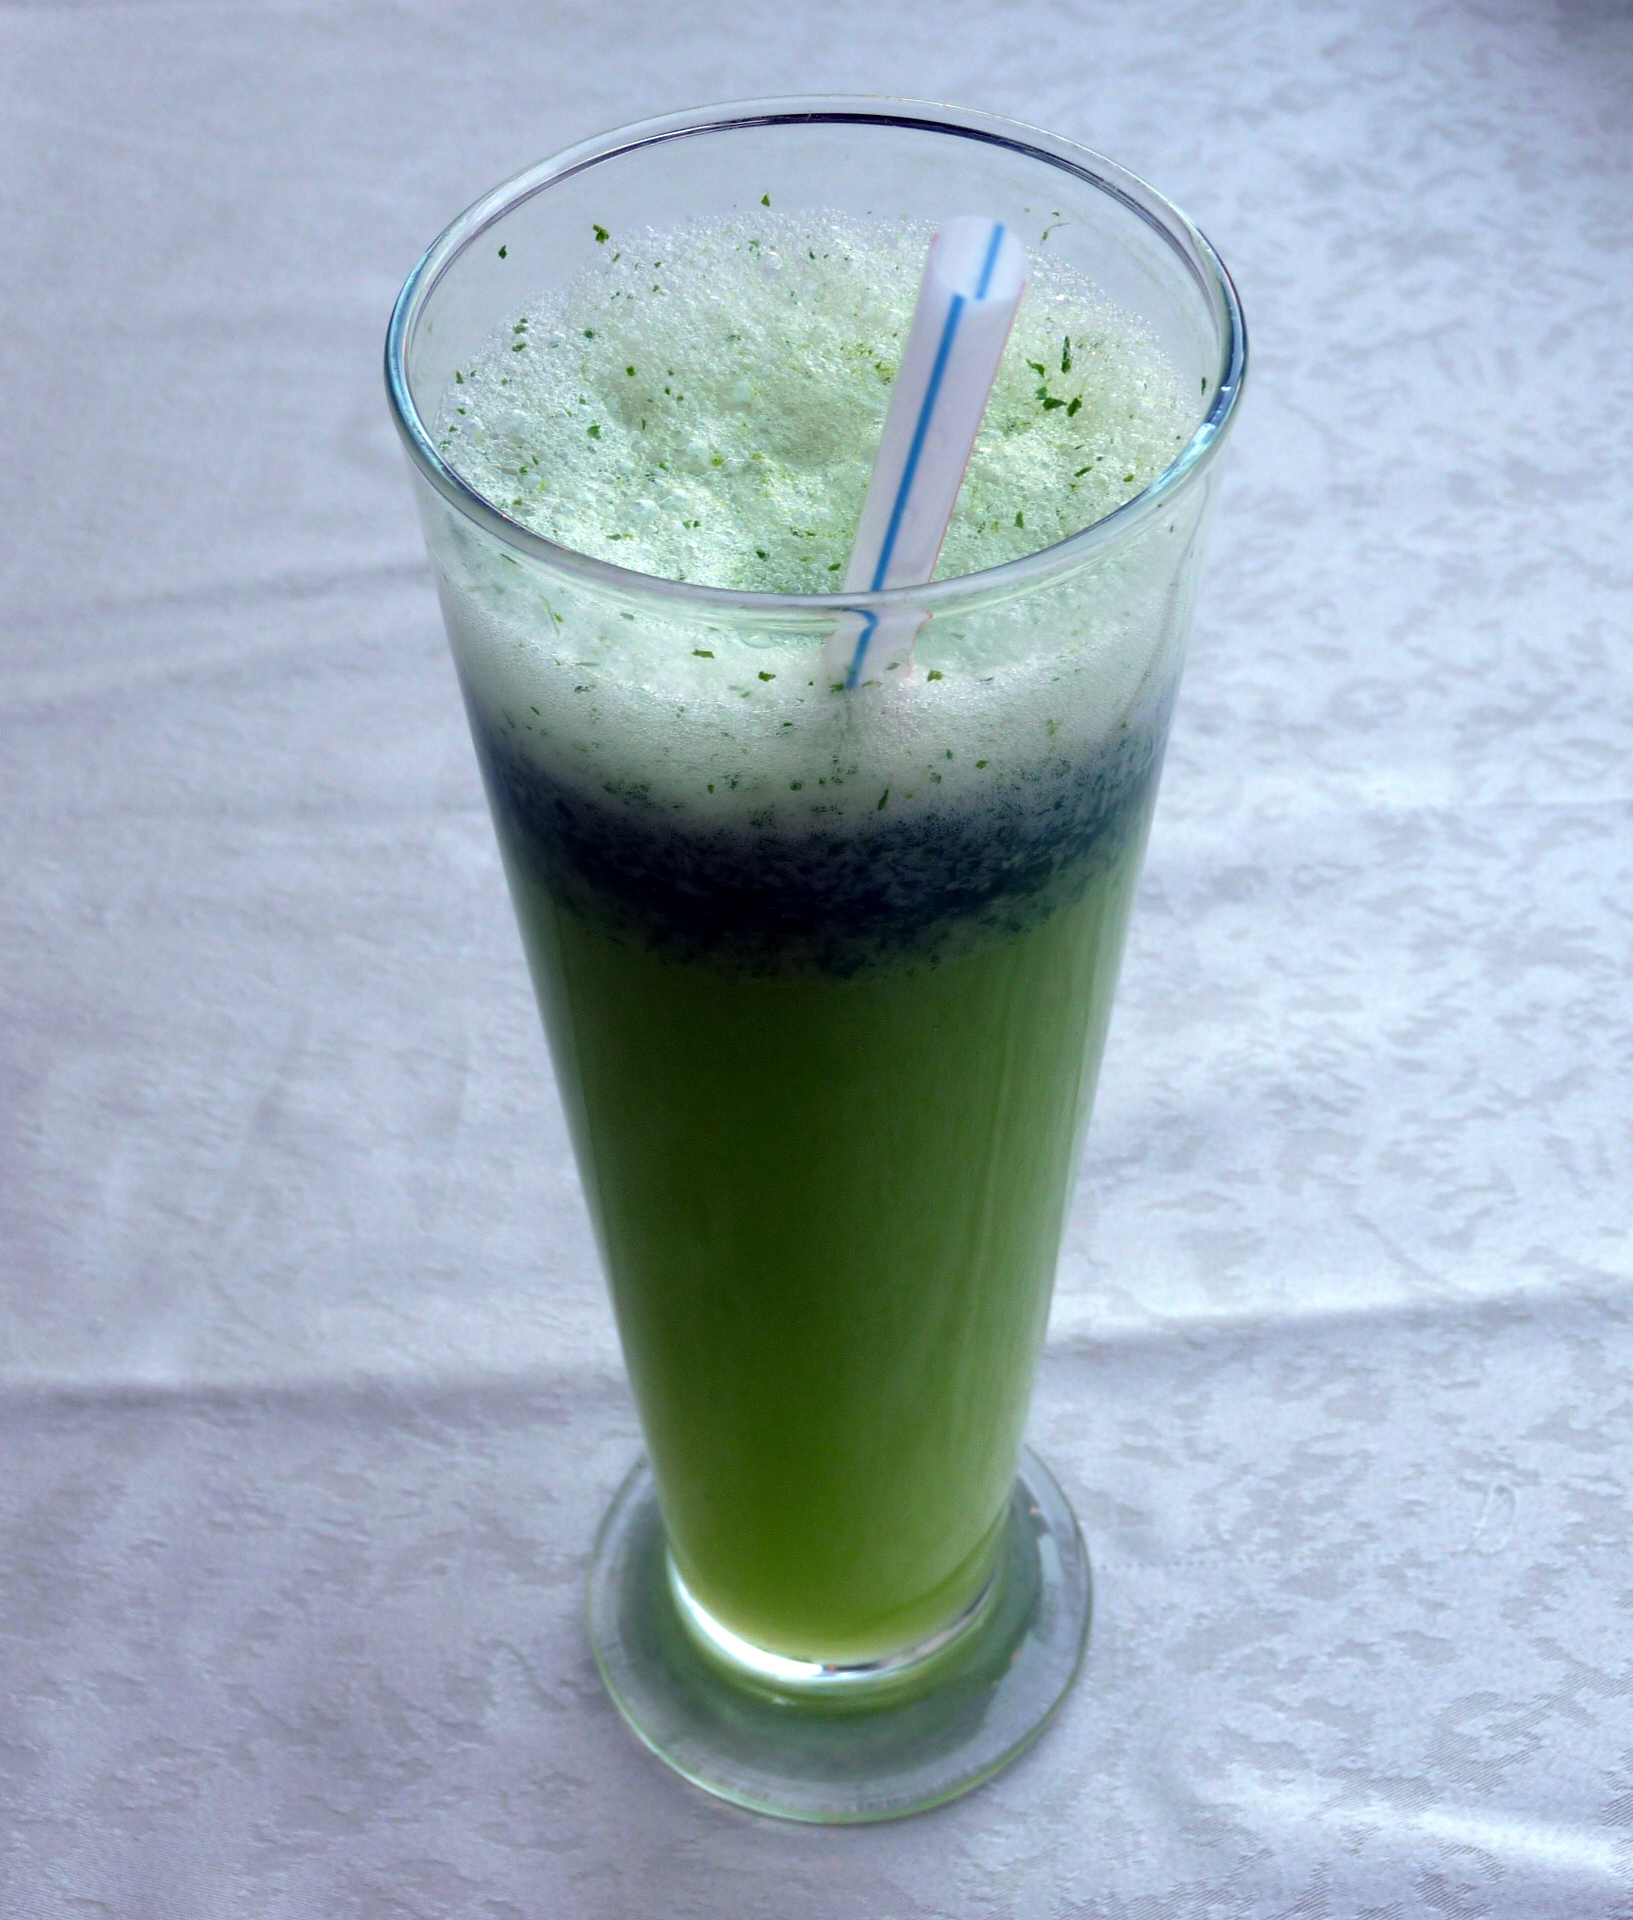 File:Mint lemonade.jpg - Wikipedia, the free encyclopedia